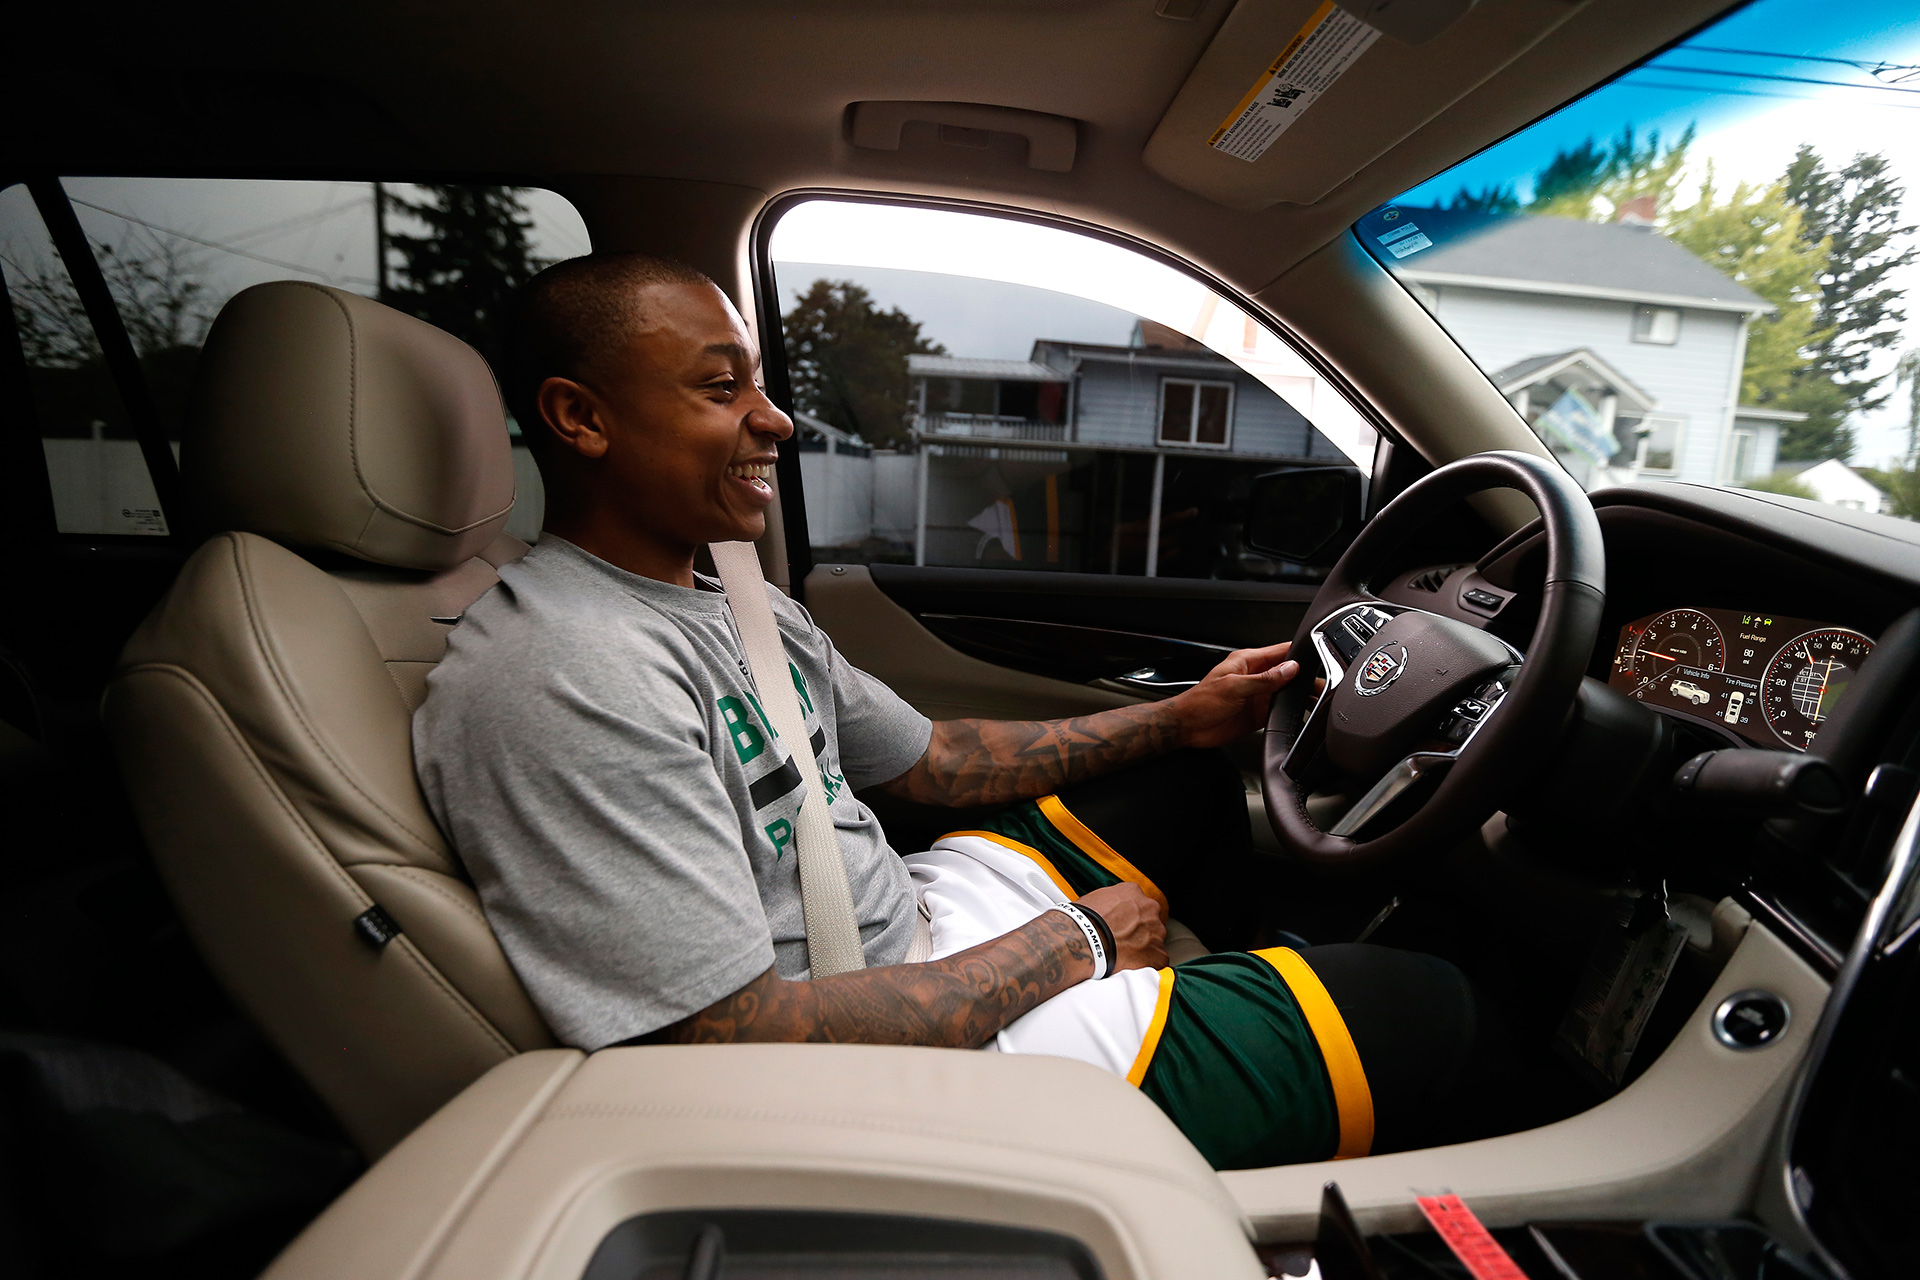 201605_28_JJ_Isaiah_Thomas_Jr_012-copy